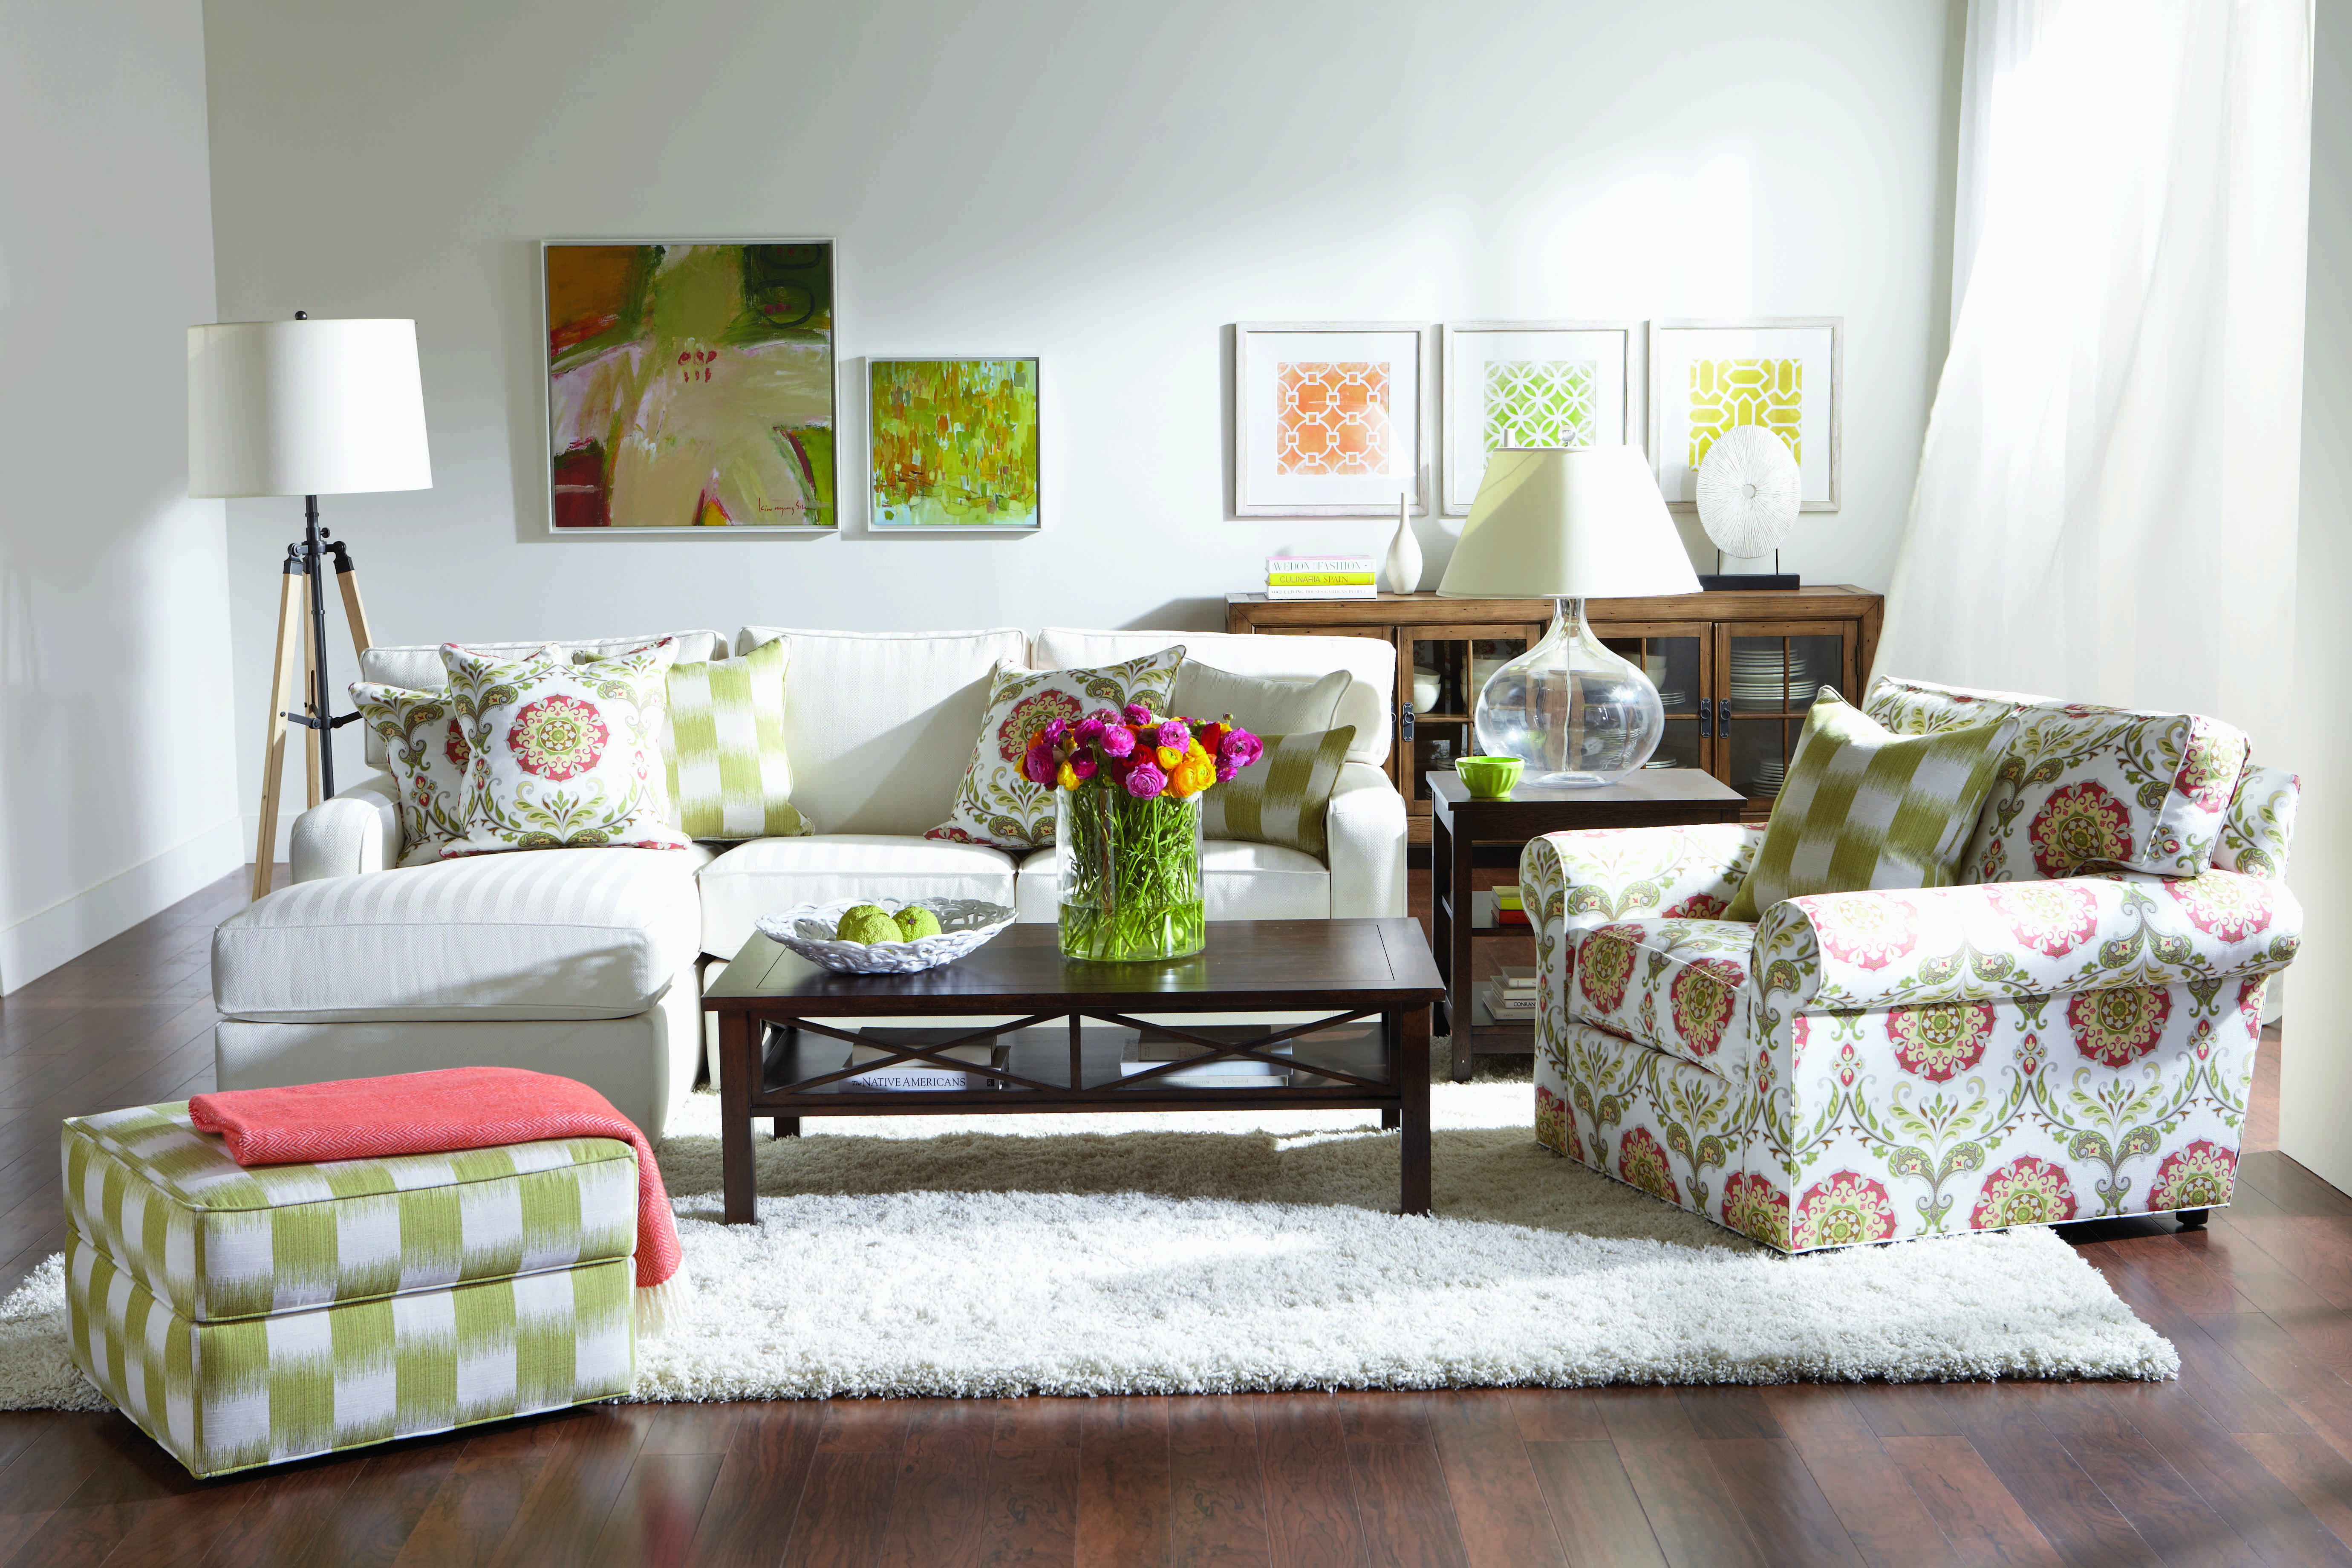 Living Room Chairs Ethan Allen Design Manager At Ethan Allen On Designing Homes In Dubaiboe Magazine